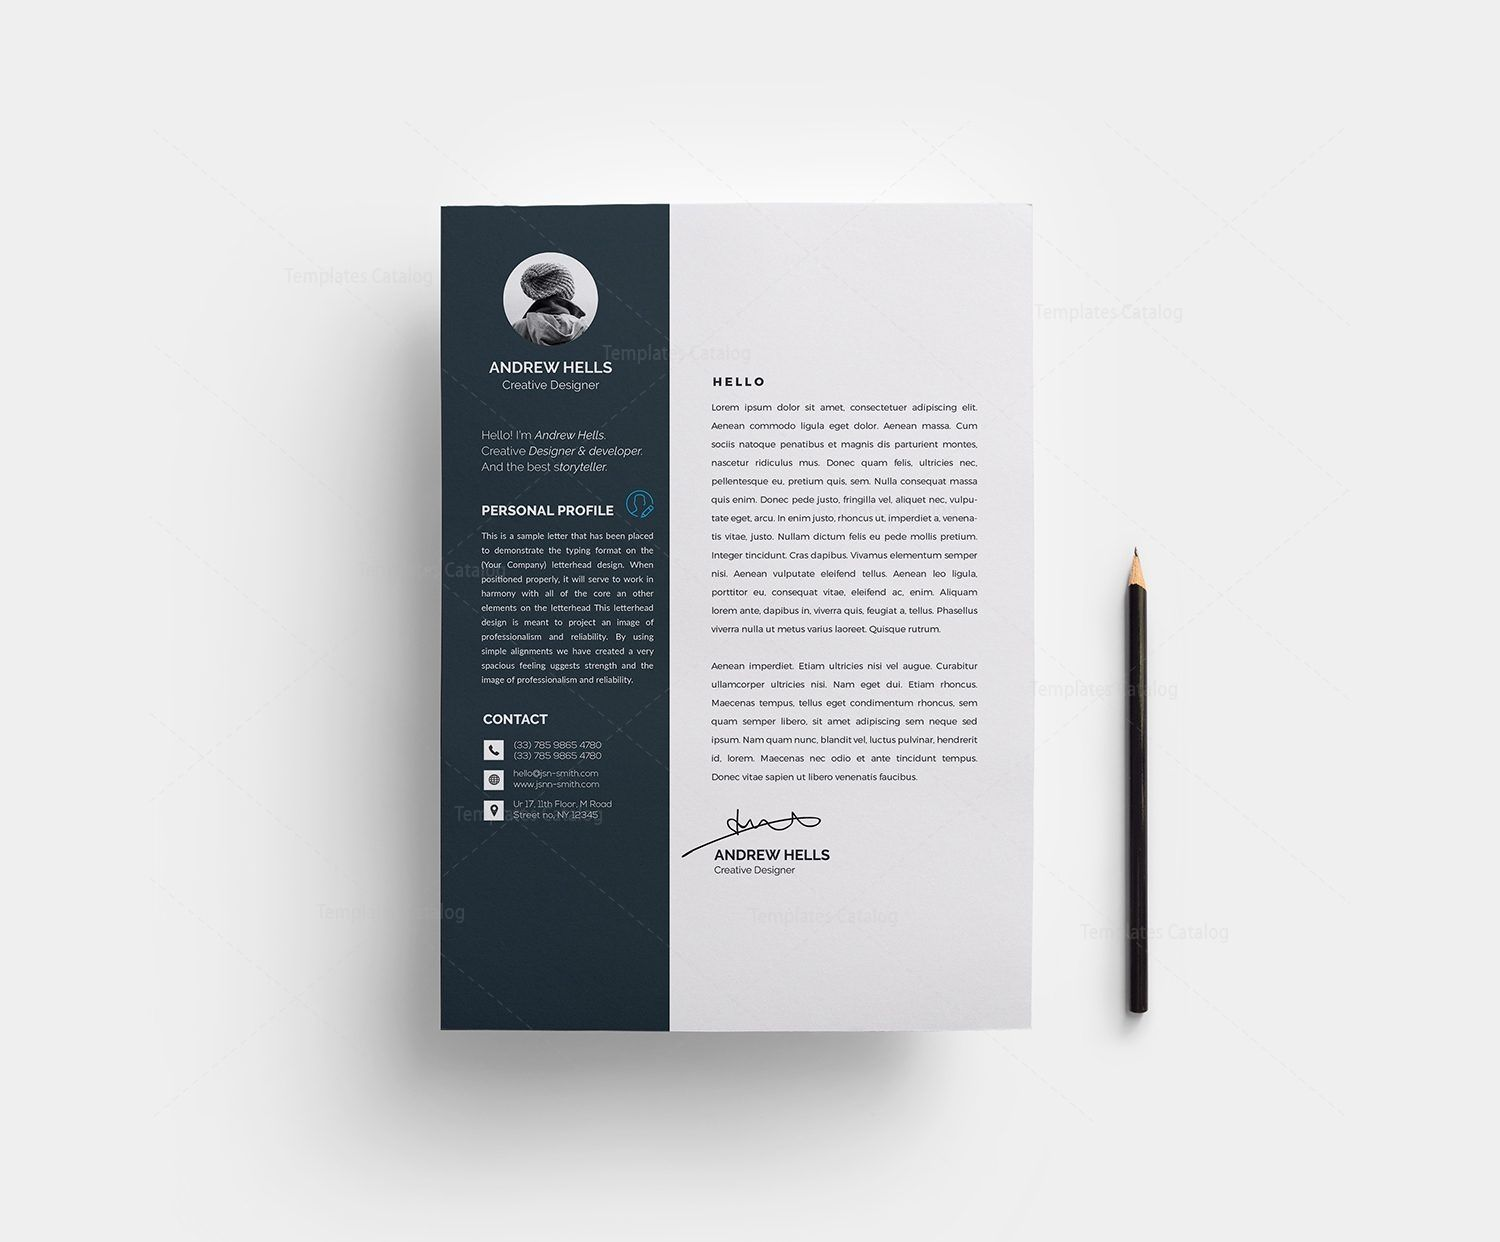 Resume Template with Modern Design - Resume design template, Resume template, Clean resume template, Resume, Templates, Resume template free - Resume Template  The perfect way to make the best impression  Strong typographic structure and very easy to use and customize    The resume have a very org